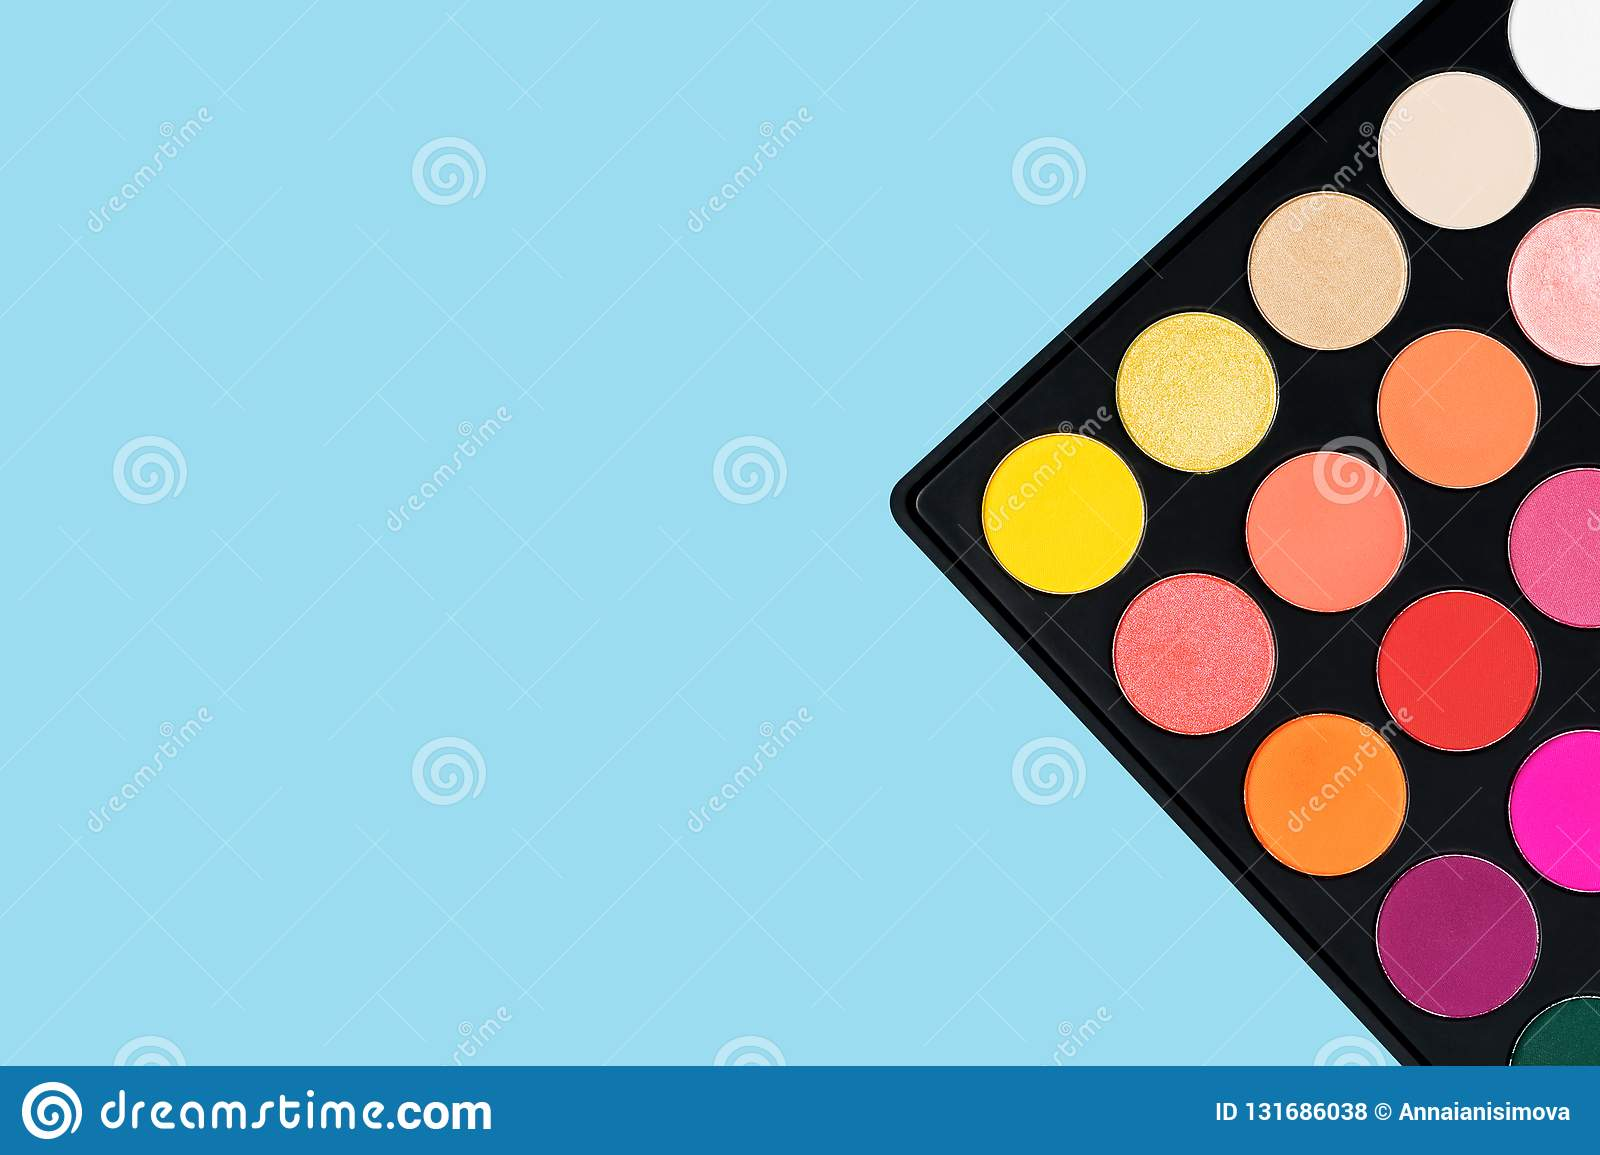 Black plastic palette of brightly coloured yellow, red, pink, orange eyeshadow placed in the corner of pastel baby blue background